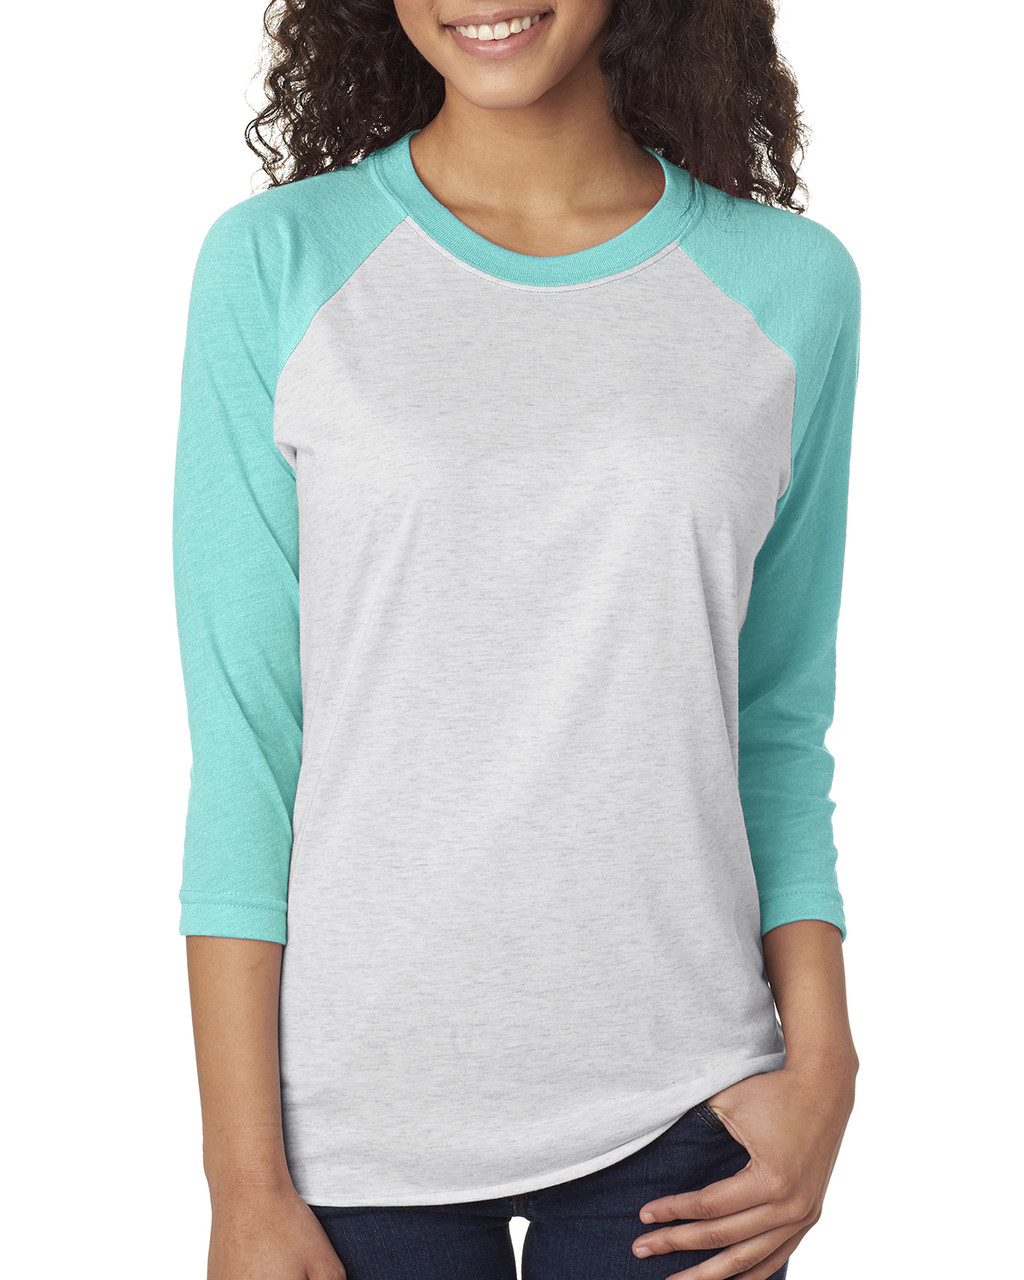 Tahiti Blue/Heather White - 6051 Next Level Unisex Tri-Blend 3/4-Sleeve Raglan Tee | Blankclothing.ca